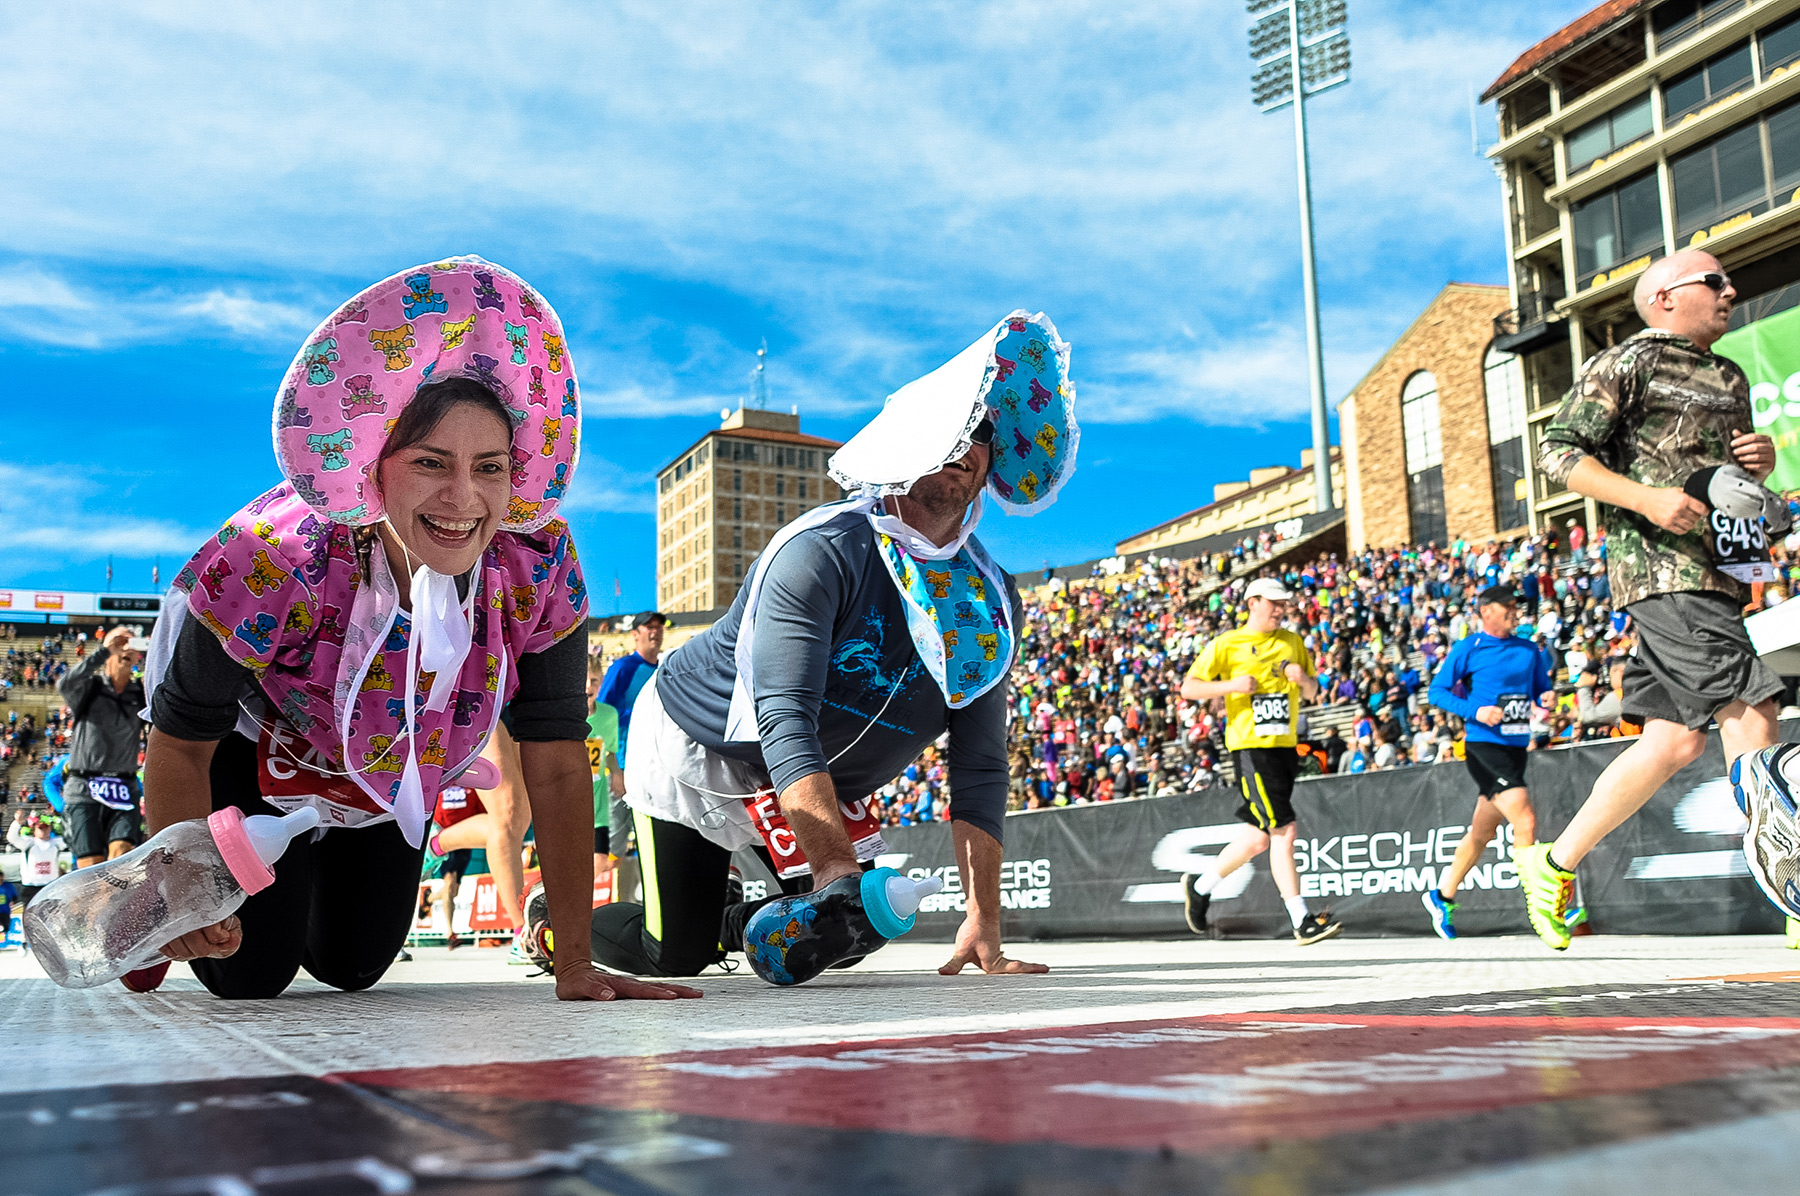 Gameface-BolderBoulder-HighRes-125